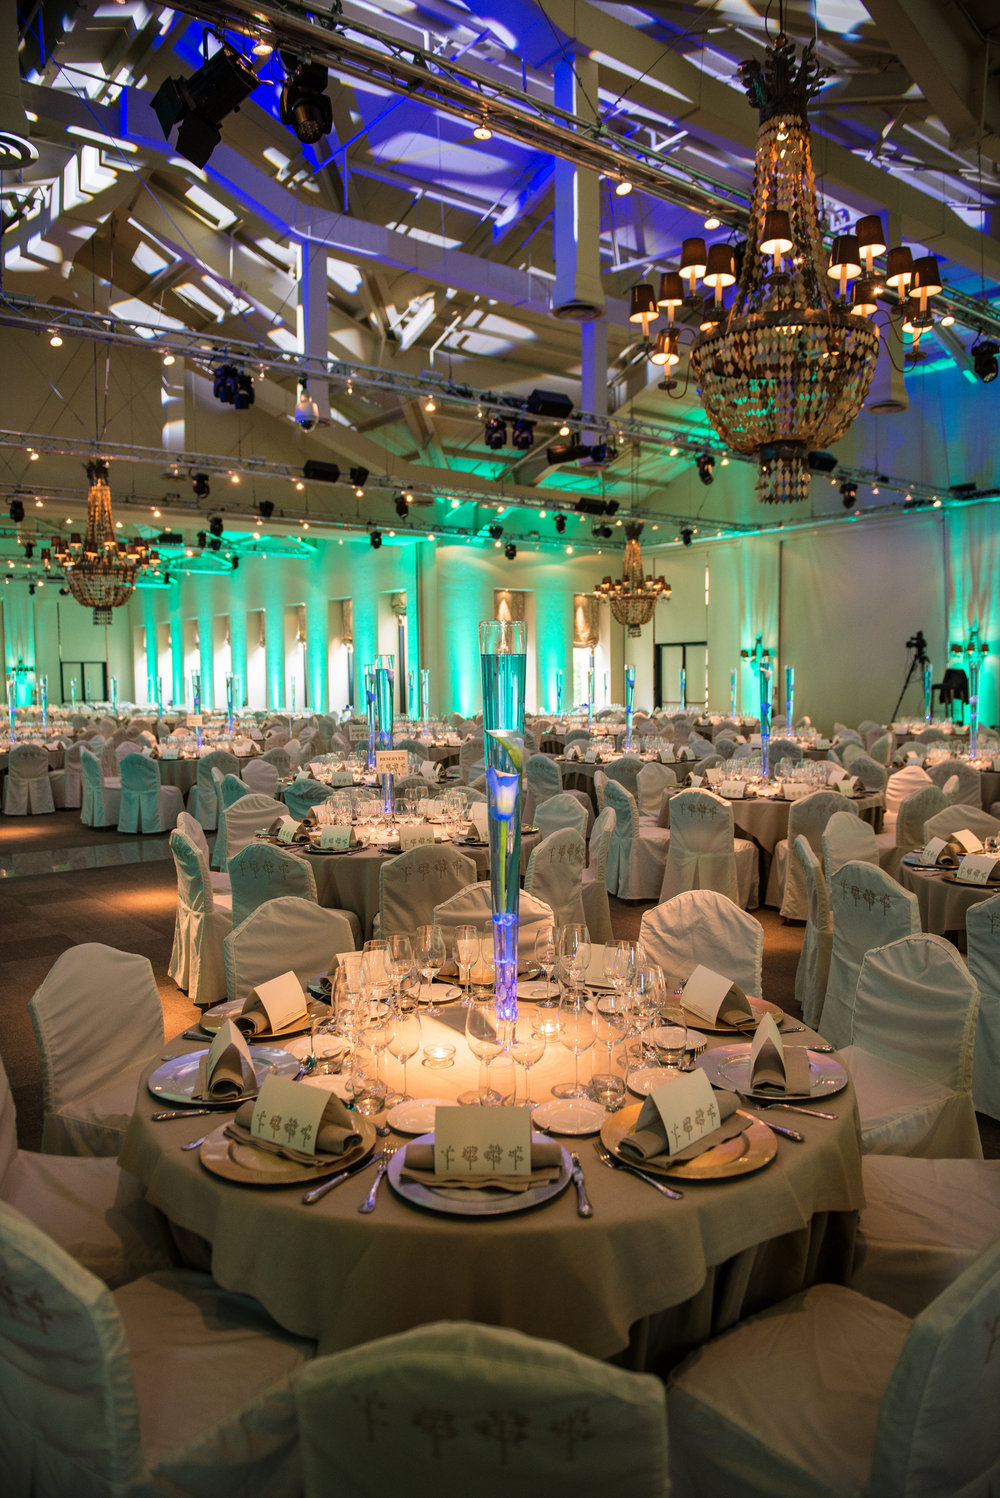 1100-person-gala-award-dinner-venue-spain.jpg